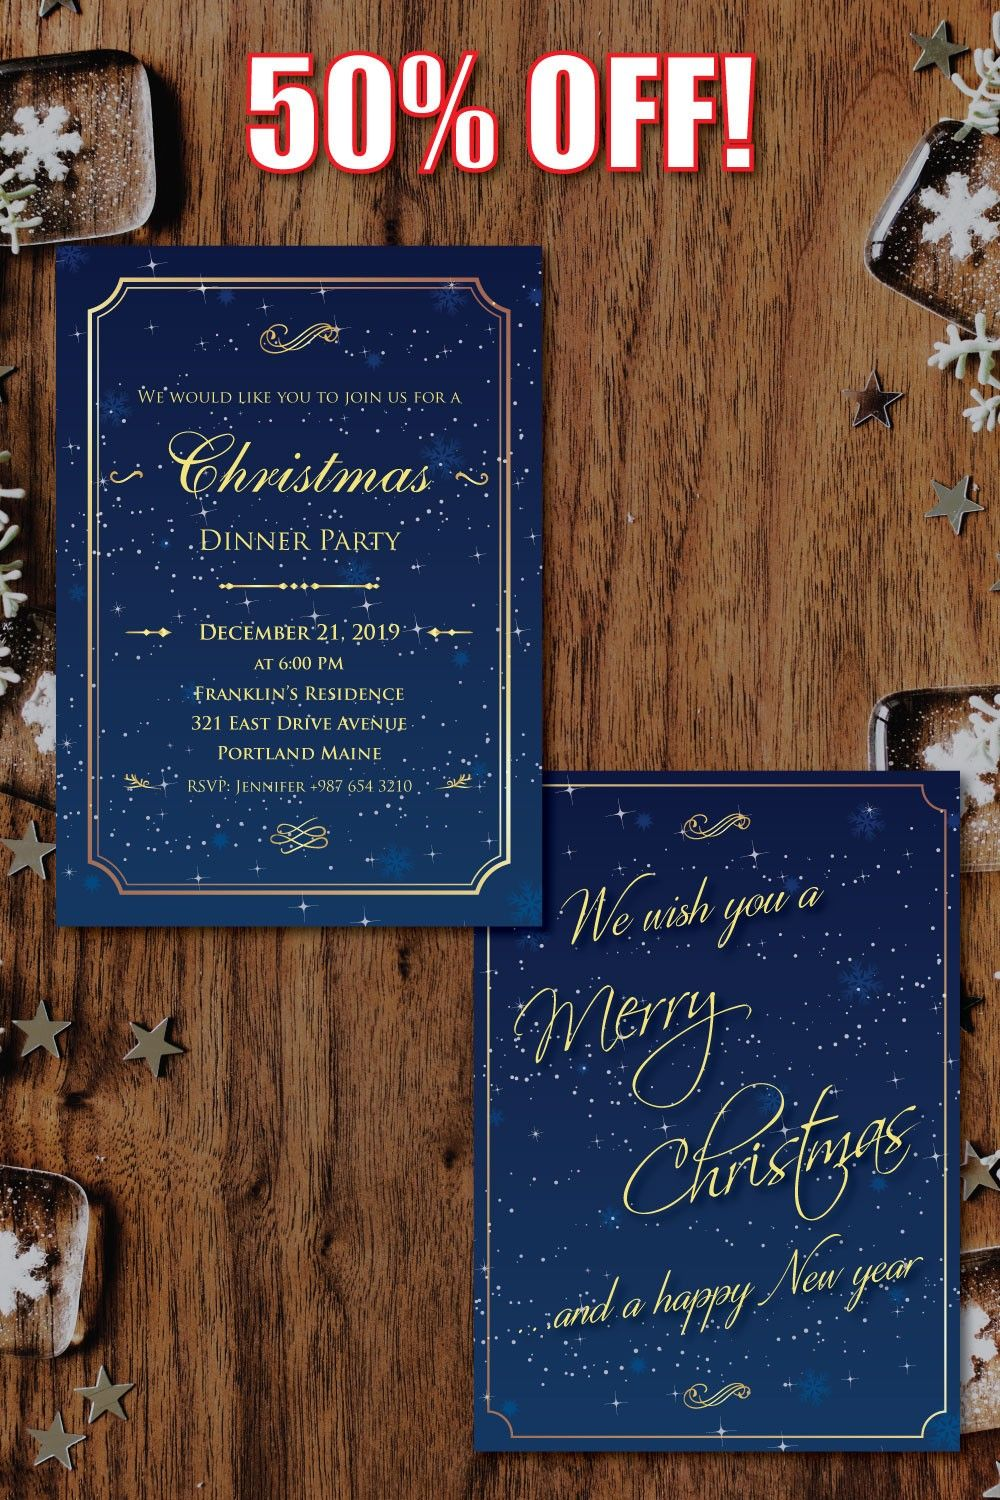 Special Offer, Christmas Party Invitation, Free Greeting